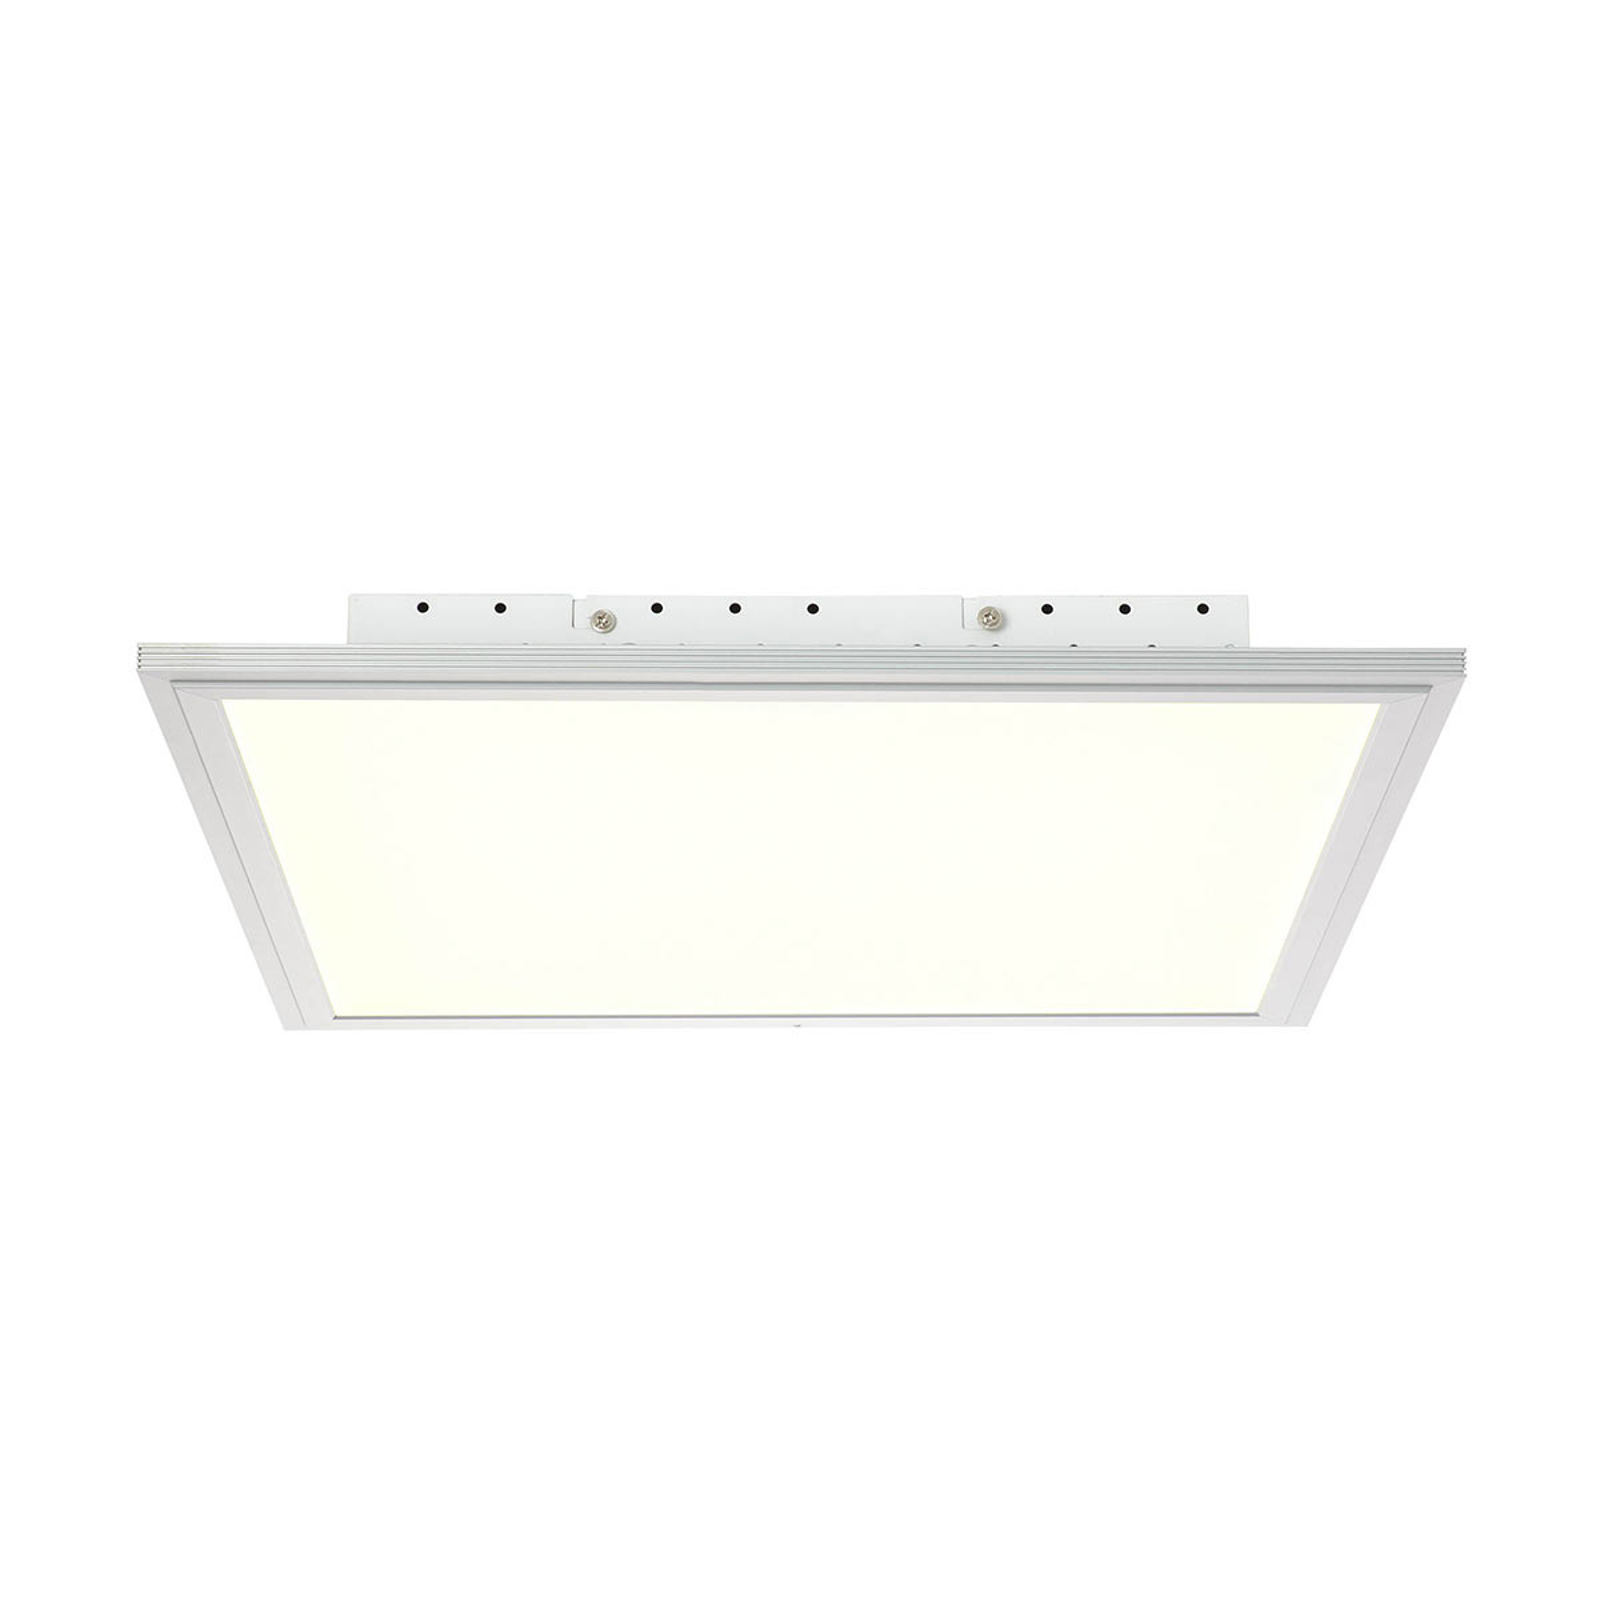 Brilliant WiZ LED-Deckenlampe Flat - 42 cm